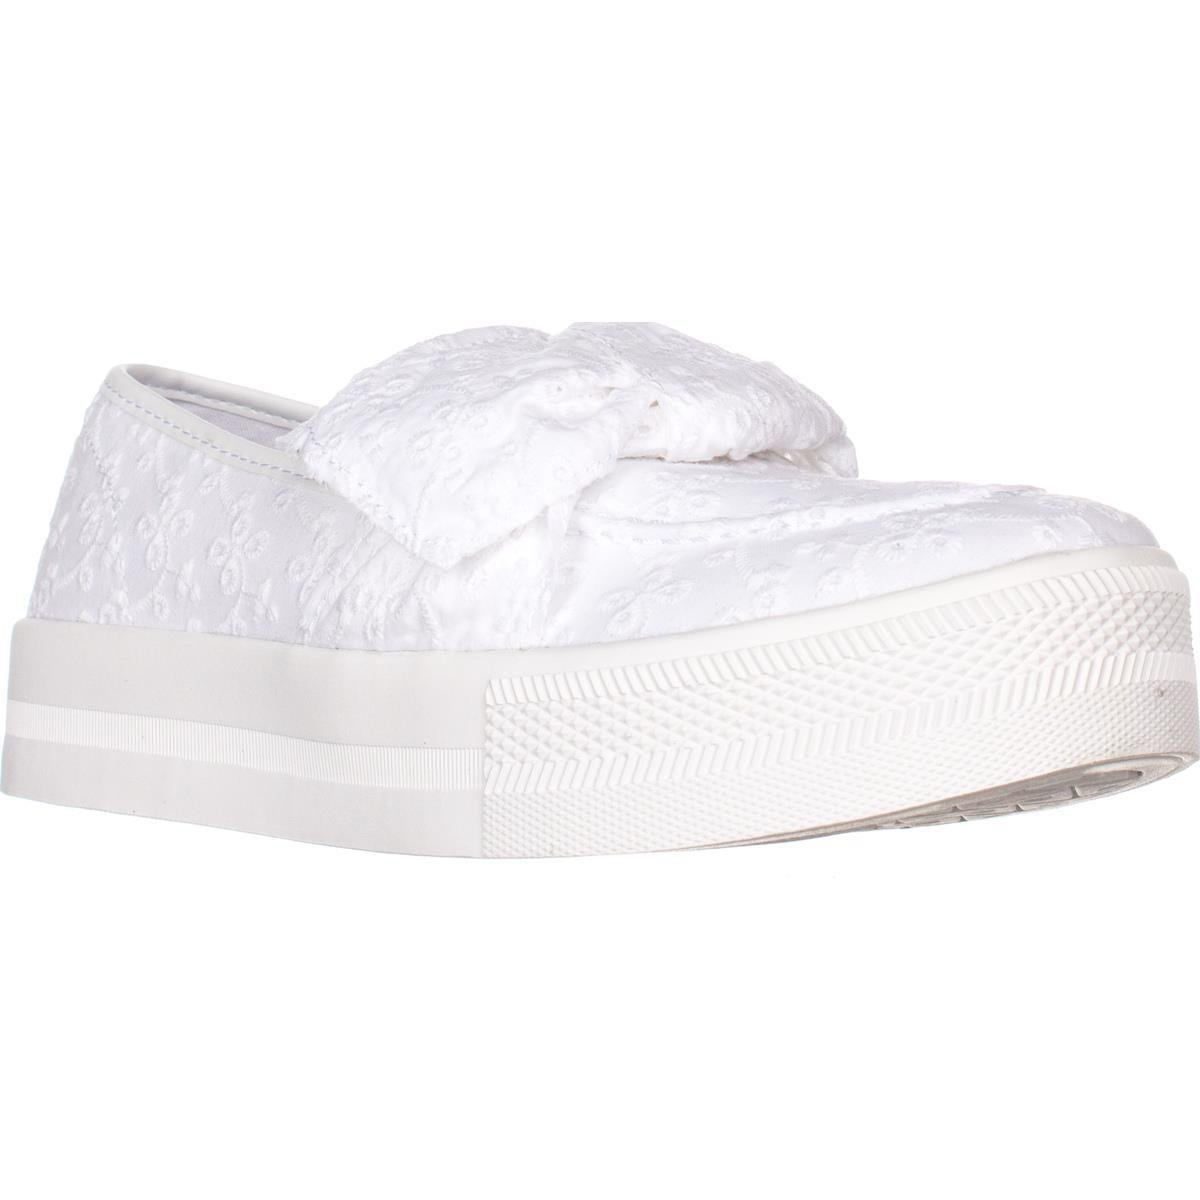 17392c2f24aec G By Guess Womens Chippy Fabric Low Top Slip On Fashion, White, Size ...